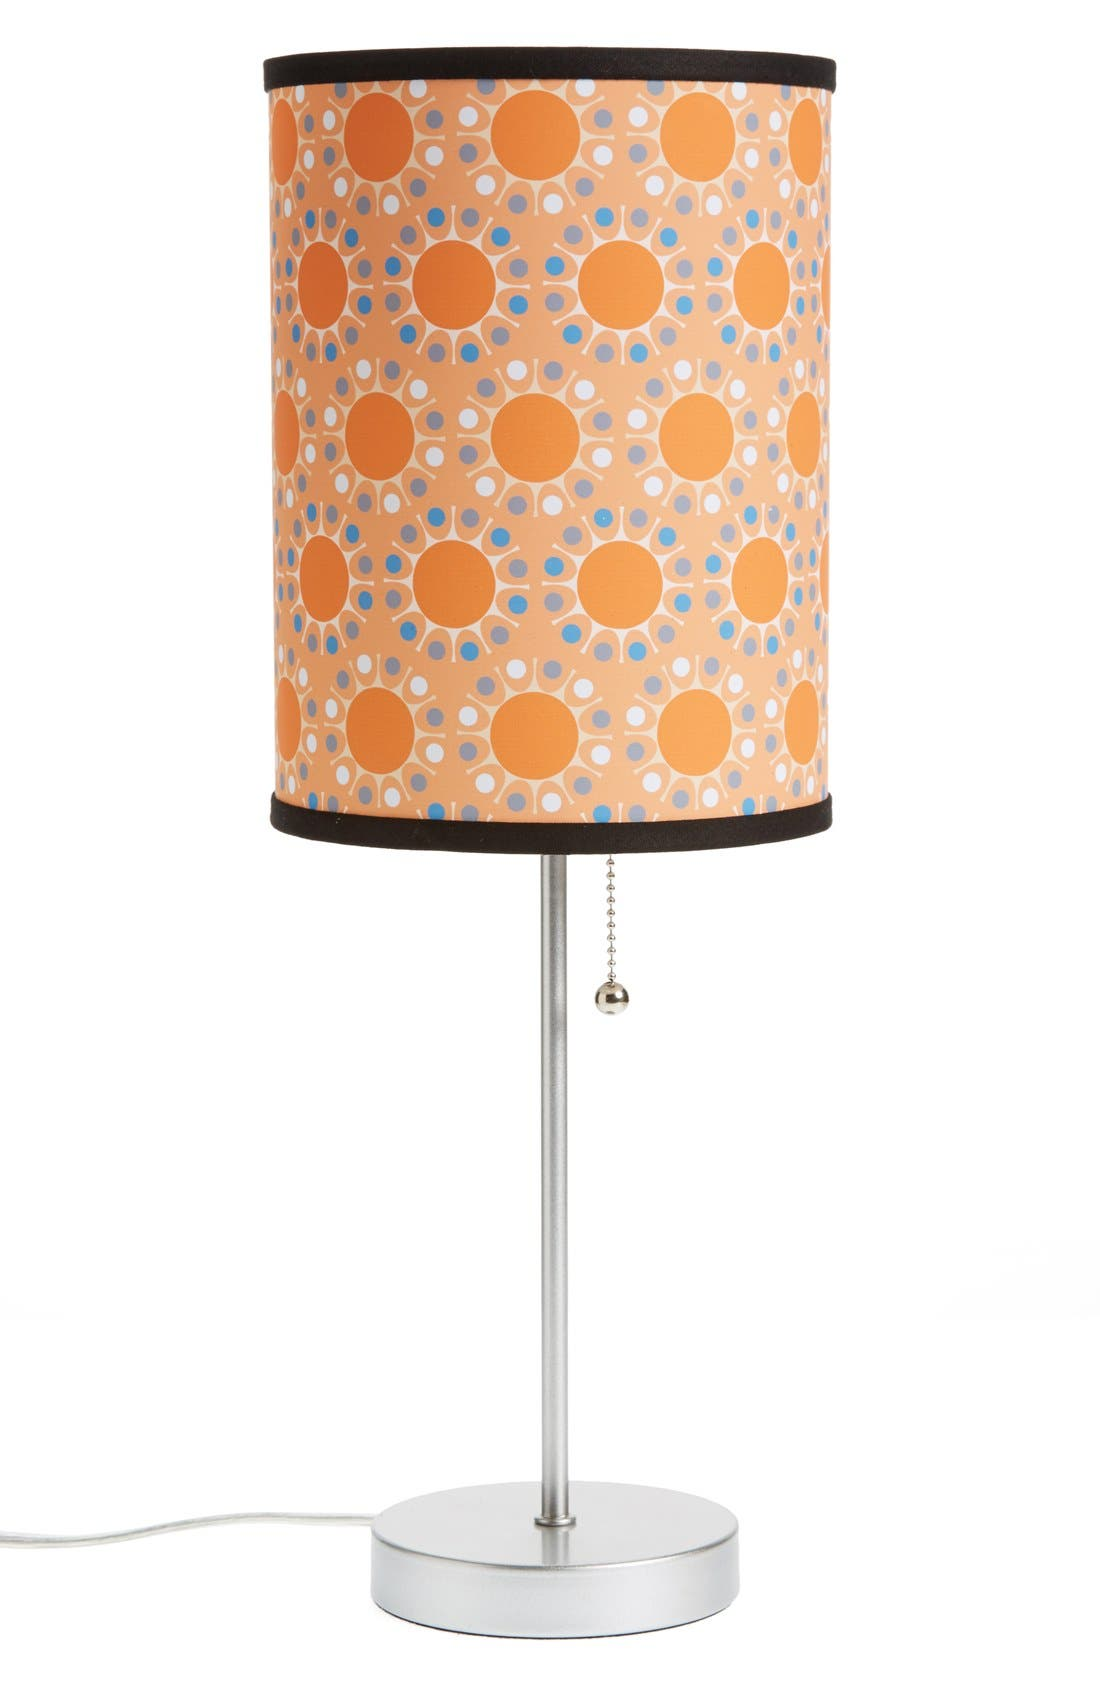 Main Image - LAMP-IN-A-BOX Retro Floral Table Lamp